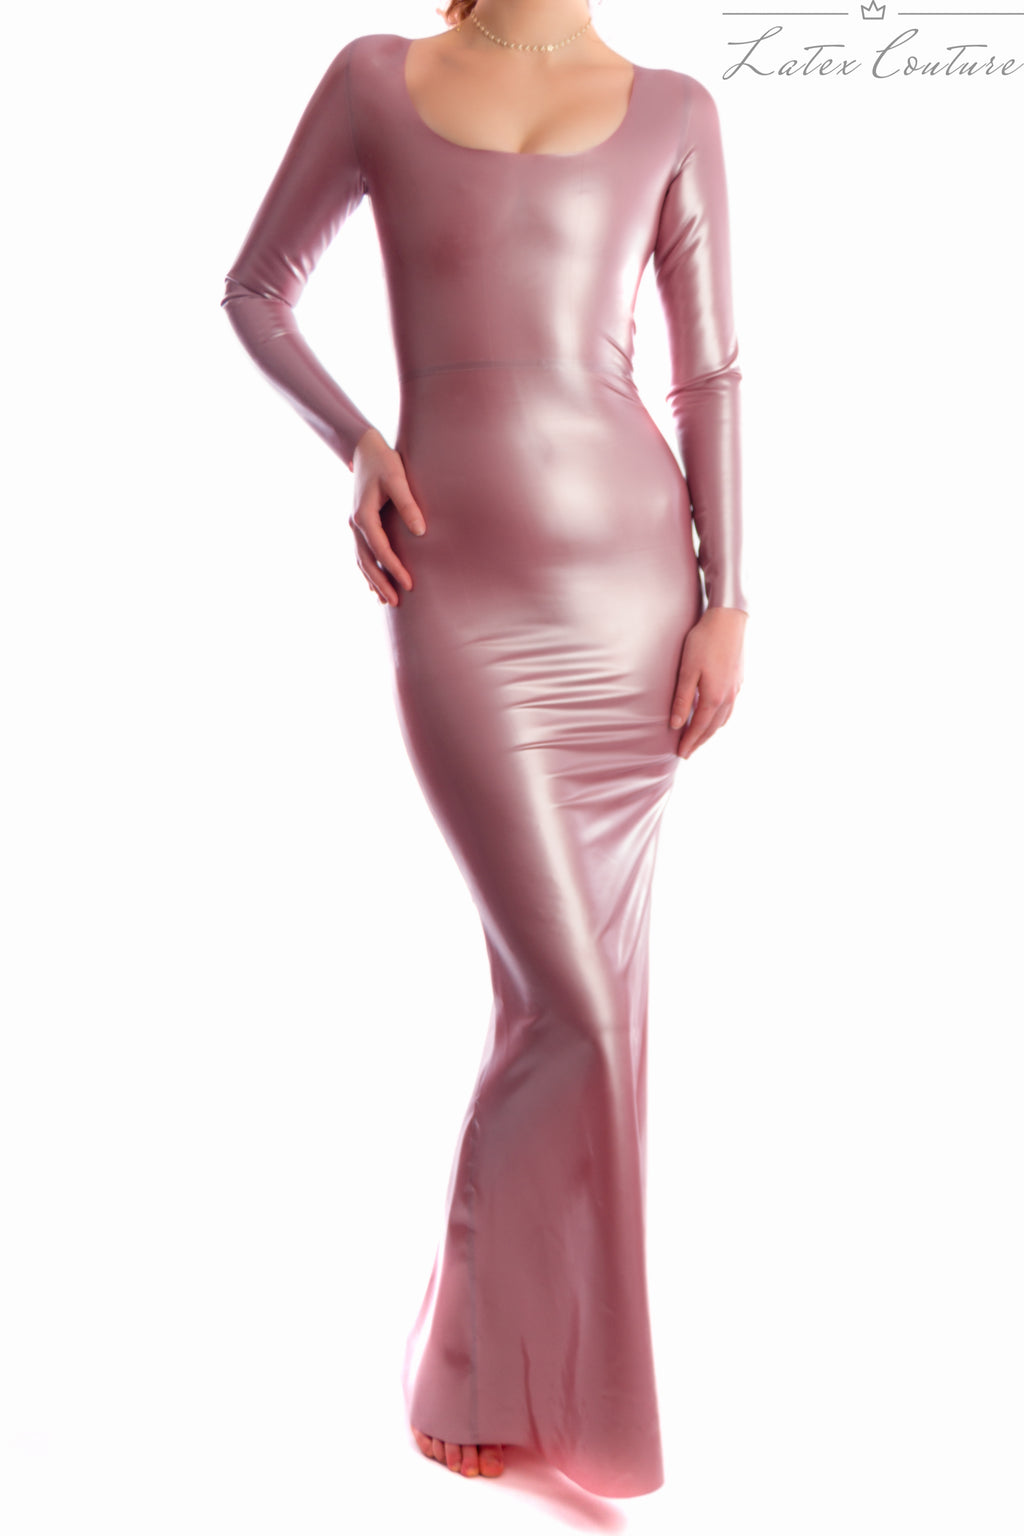 Latex Gown - Latex Long Sleeved Gown £230